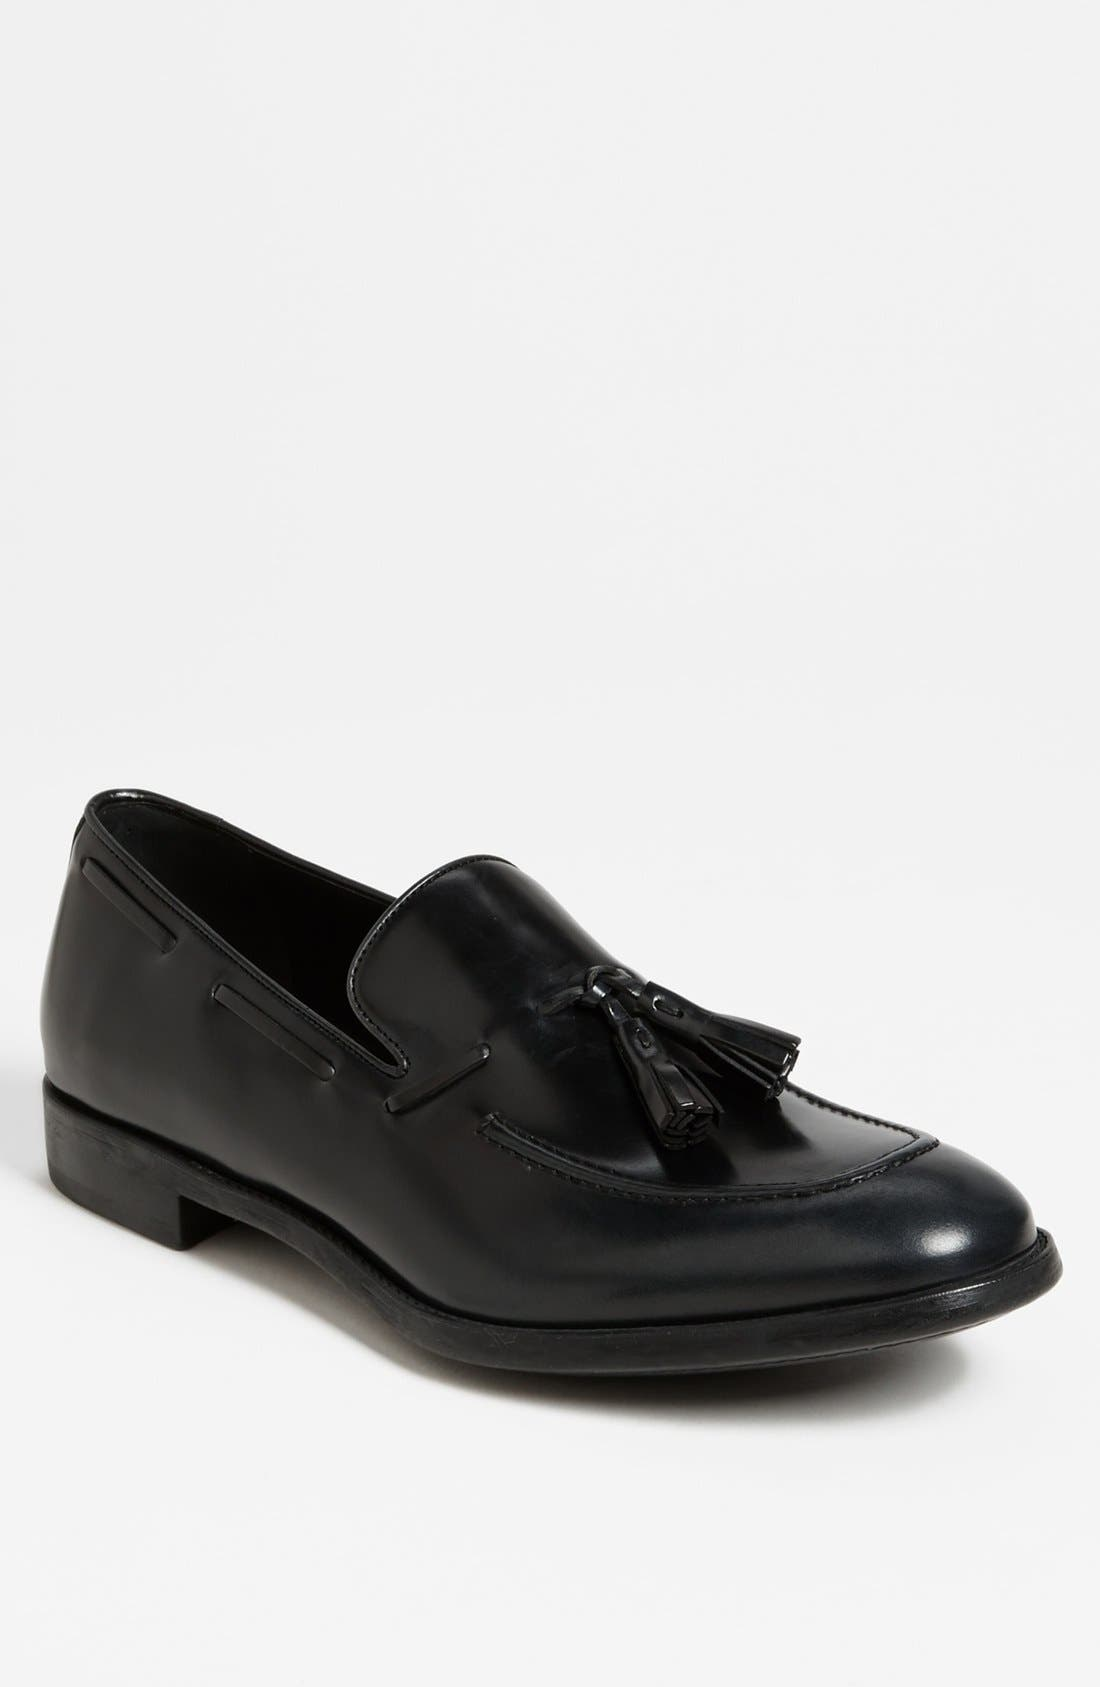 Alternate Image 1 Selected - Salvatore Ferragamo 'Sasha' Tassel Loafer